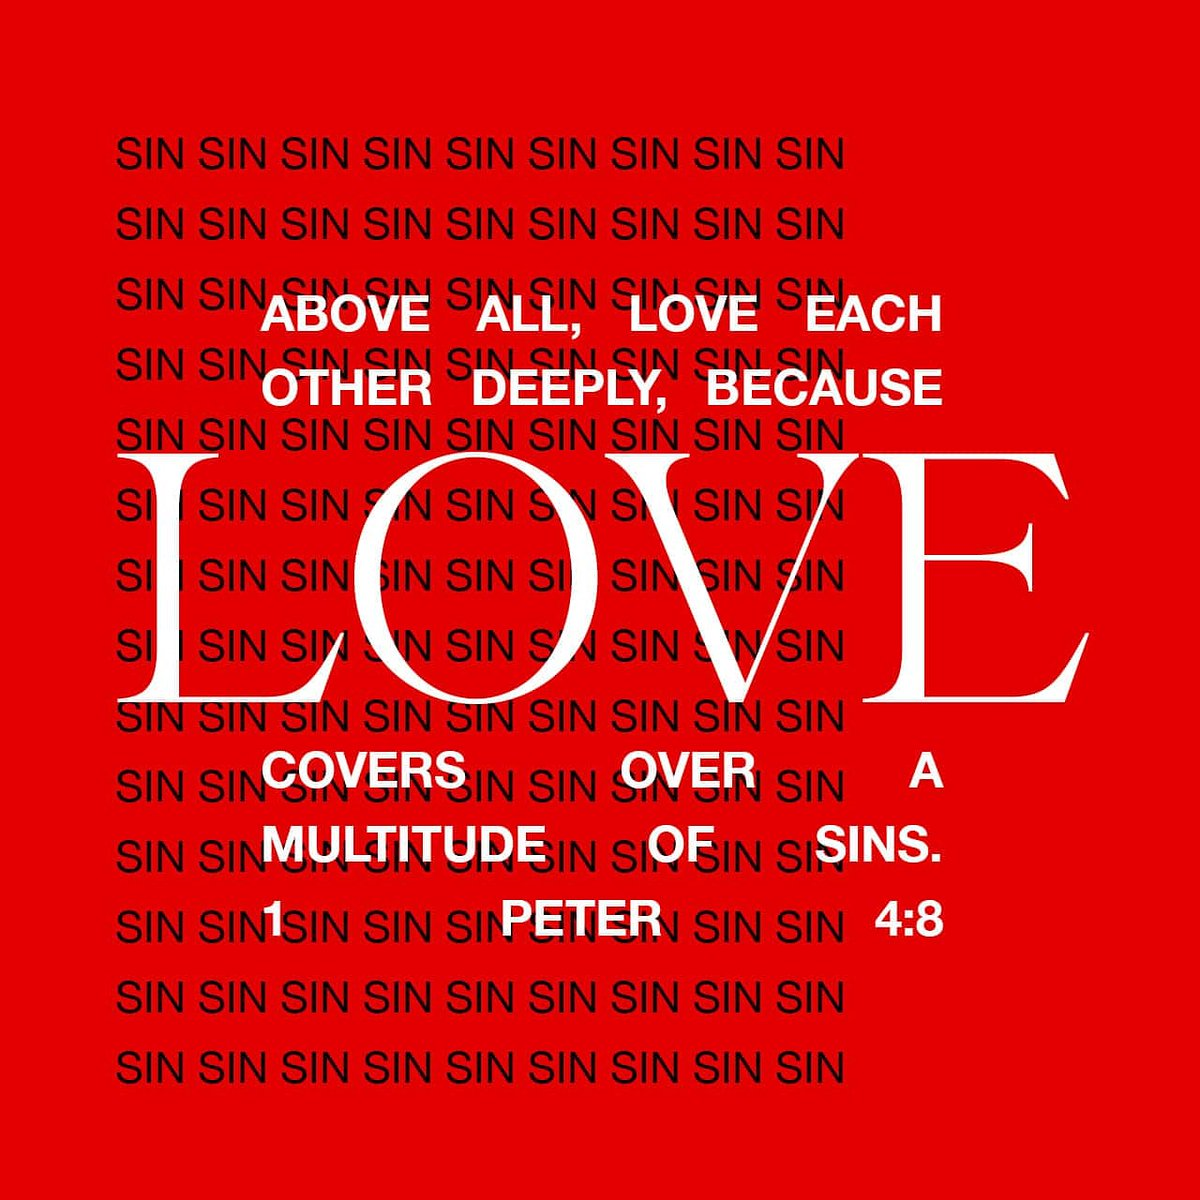 Above all, have fervent and unfailing love for one another, because love covers a multitude of sins [it overlooks unkindness and unselfishly seeks the best for others]. 1 Peter 4:8 AMP  #love